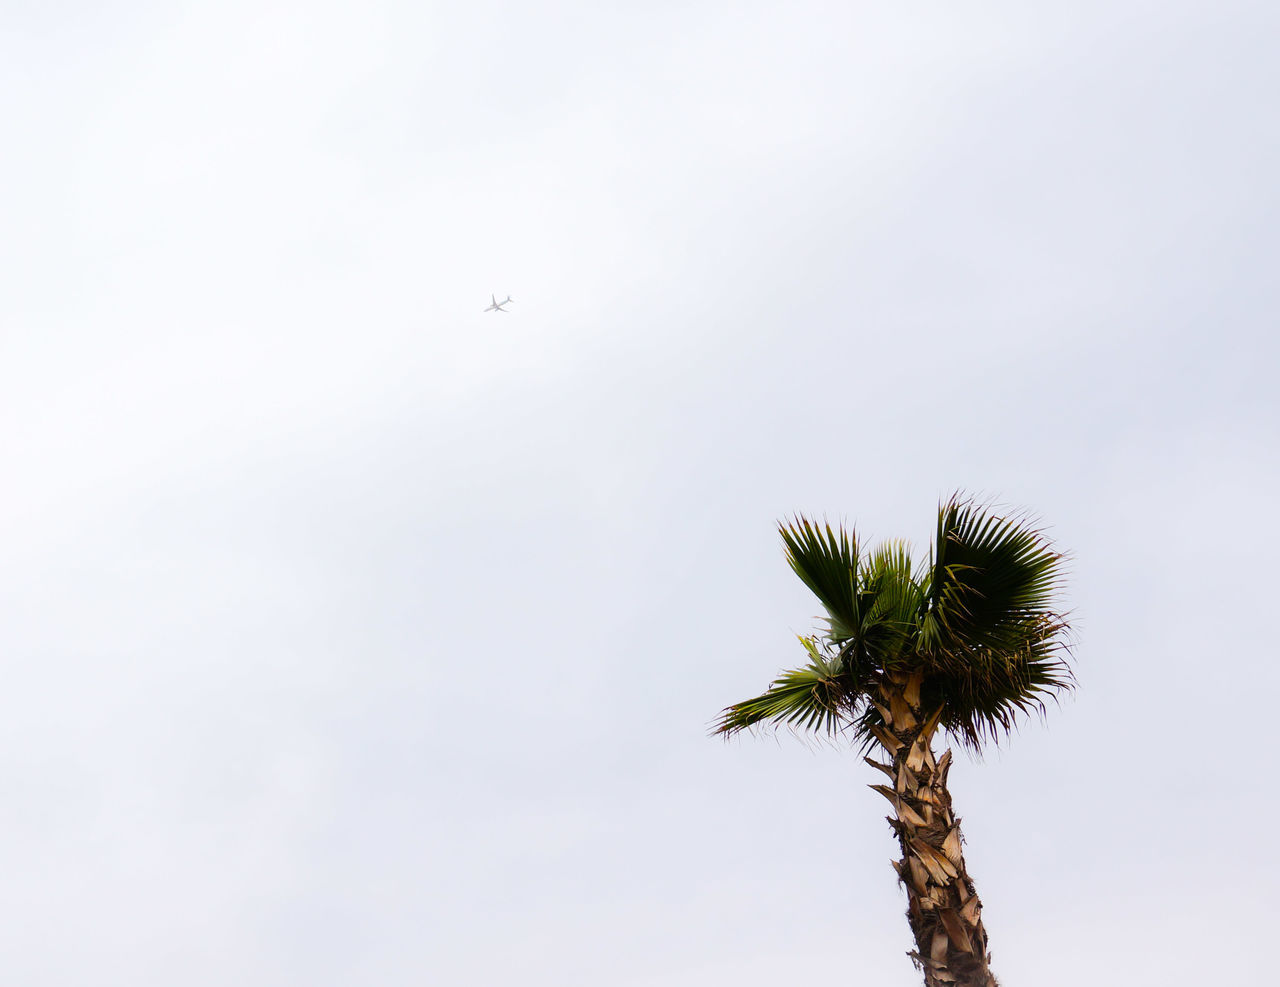 Nope! Goodbyes are not easy ✈ 👋 👋 👋 Palm Palm Tree Open Space Copy Space Tree Flying Plane The Horizon Low Angle View White Sky MnM MnMl Mnmlsm Minimalism Minimal Minimalistic Minimalmood Minimalist Minimalobsession Minimalart Minimalarchy Mobilephotography Shootermag Airplane